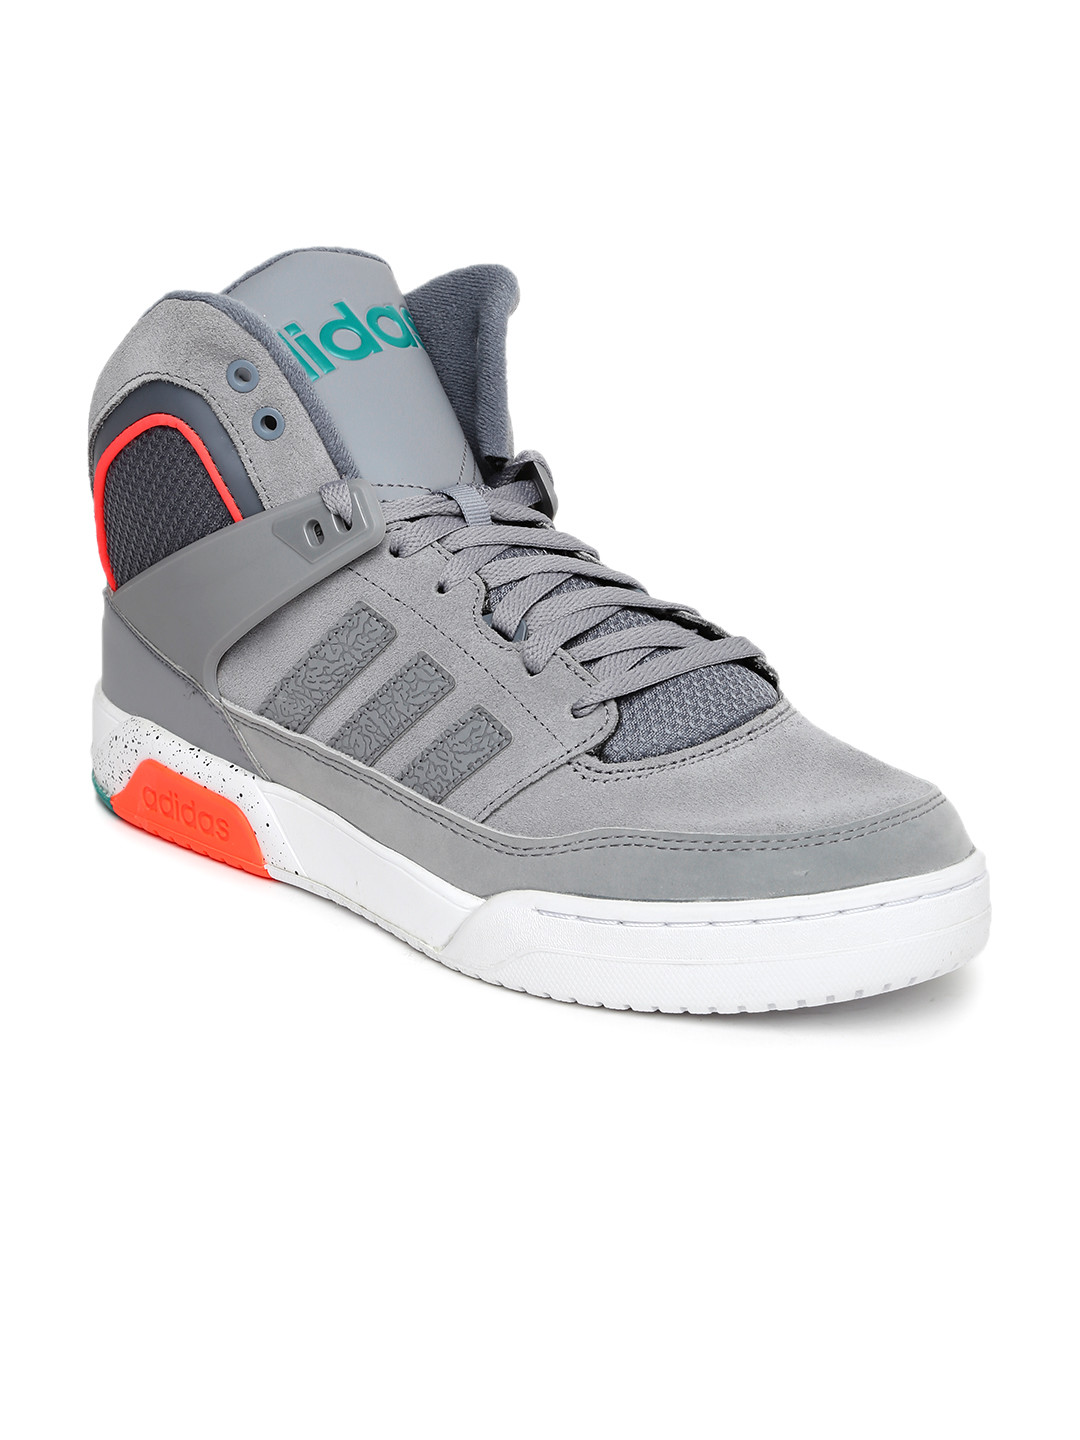 adidas neo mid ankle, Adidas NEO Men CTX9TIS MID Sneakers price in India